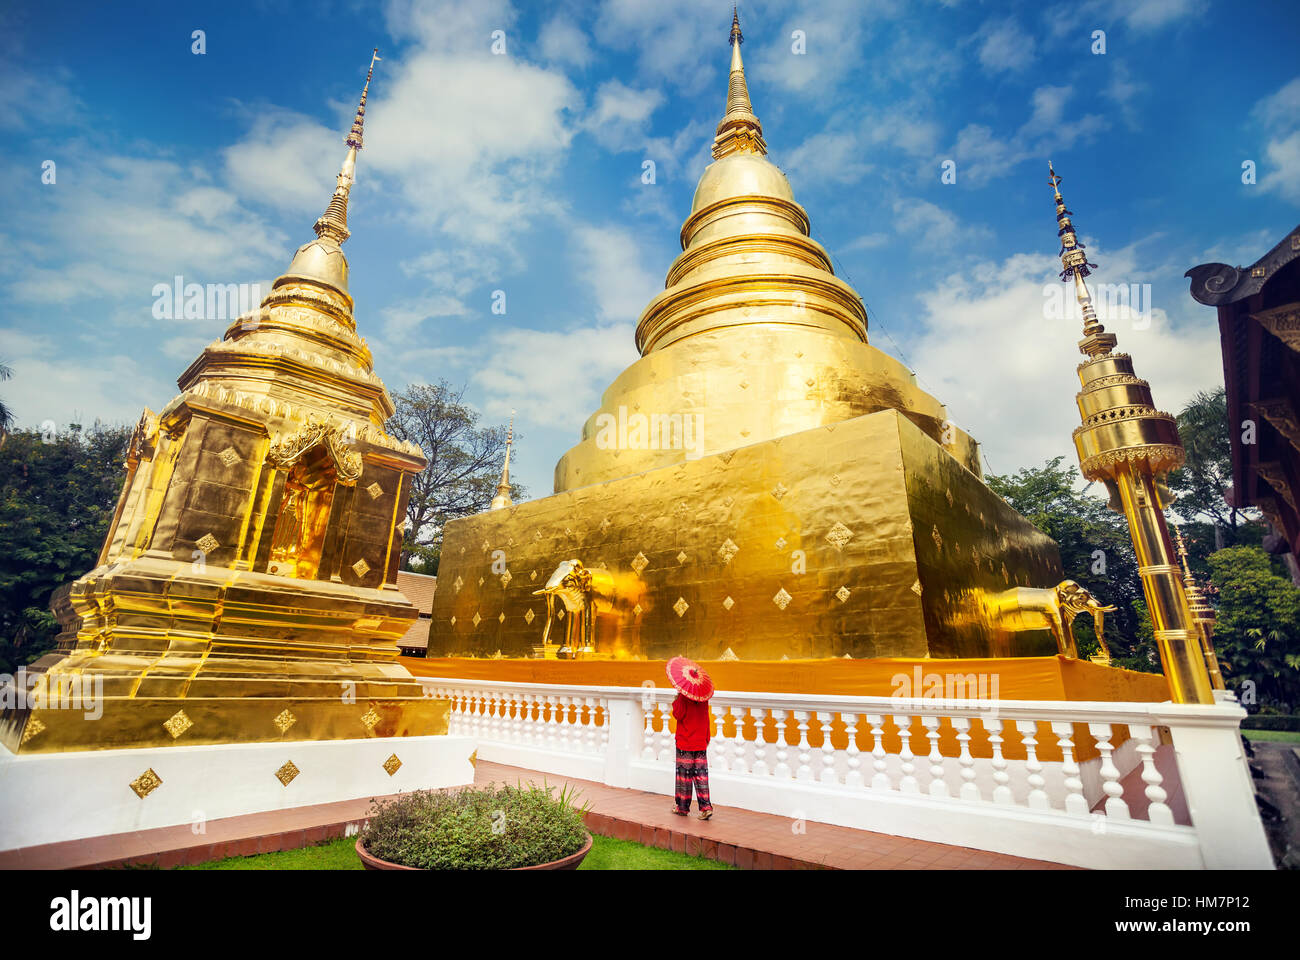 Woman tourist with red traditional Thai umbrella near Golden Stupa at temple Wat Phra Singh in Chiang Mai, Thailand - Stock Image